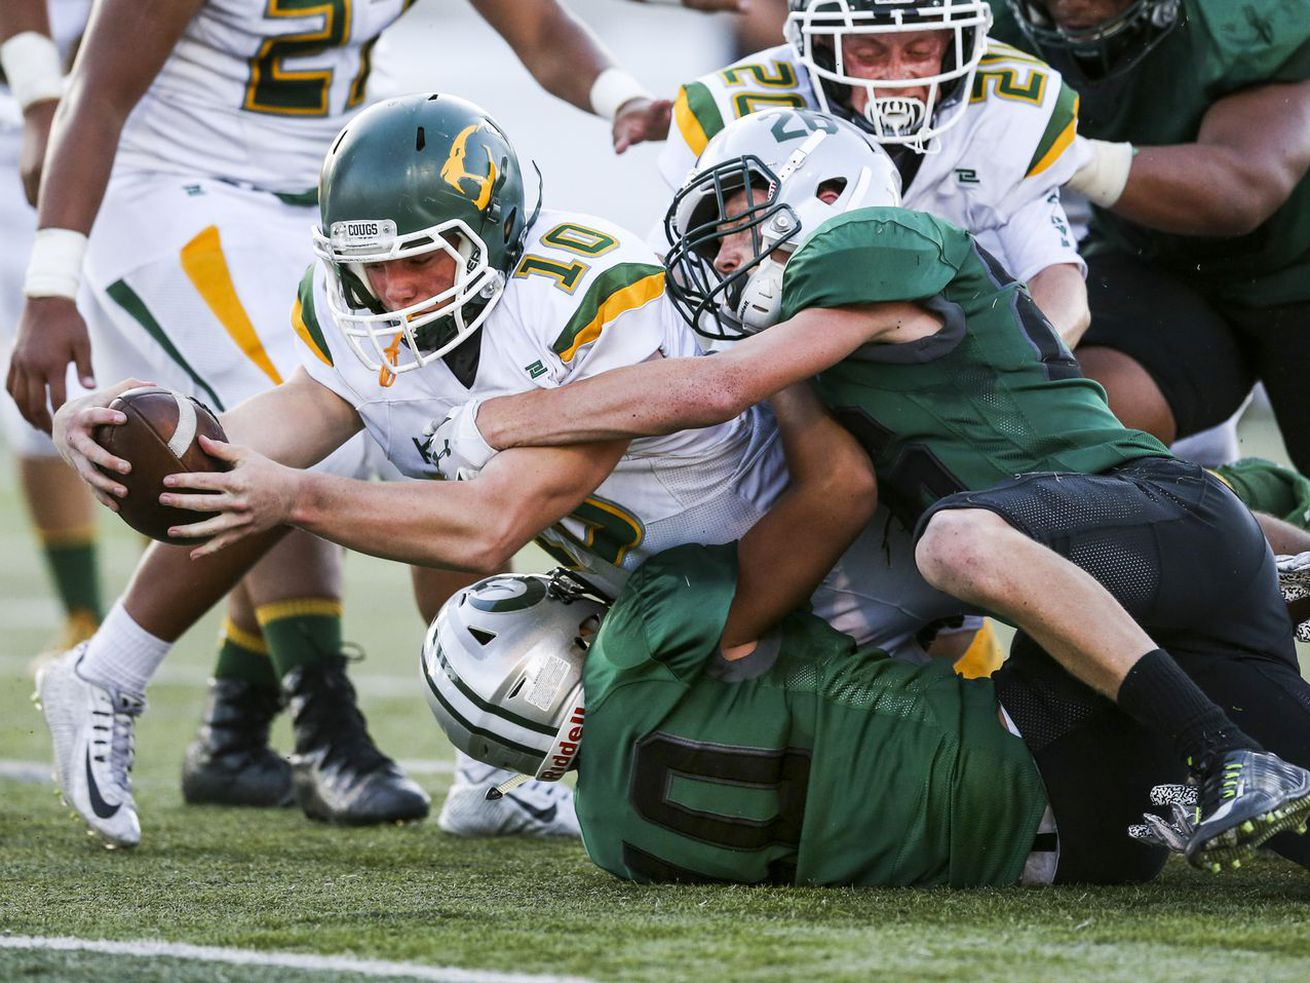 Kearns the favorite in Region 2; Cougars looking to win fourth straight region title